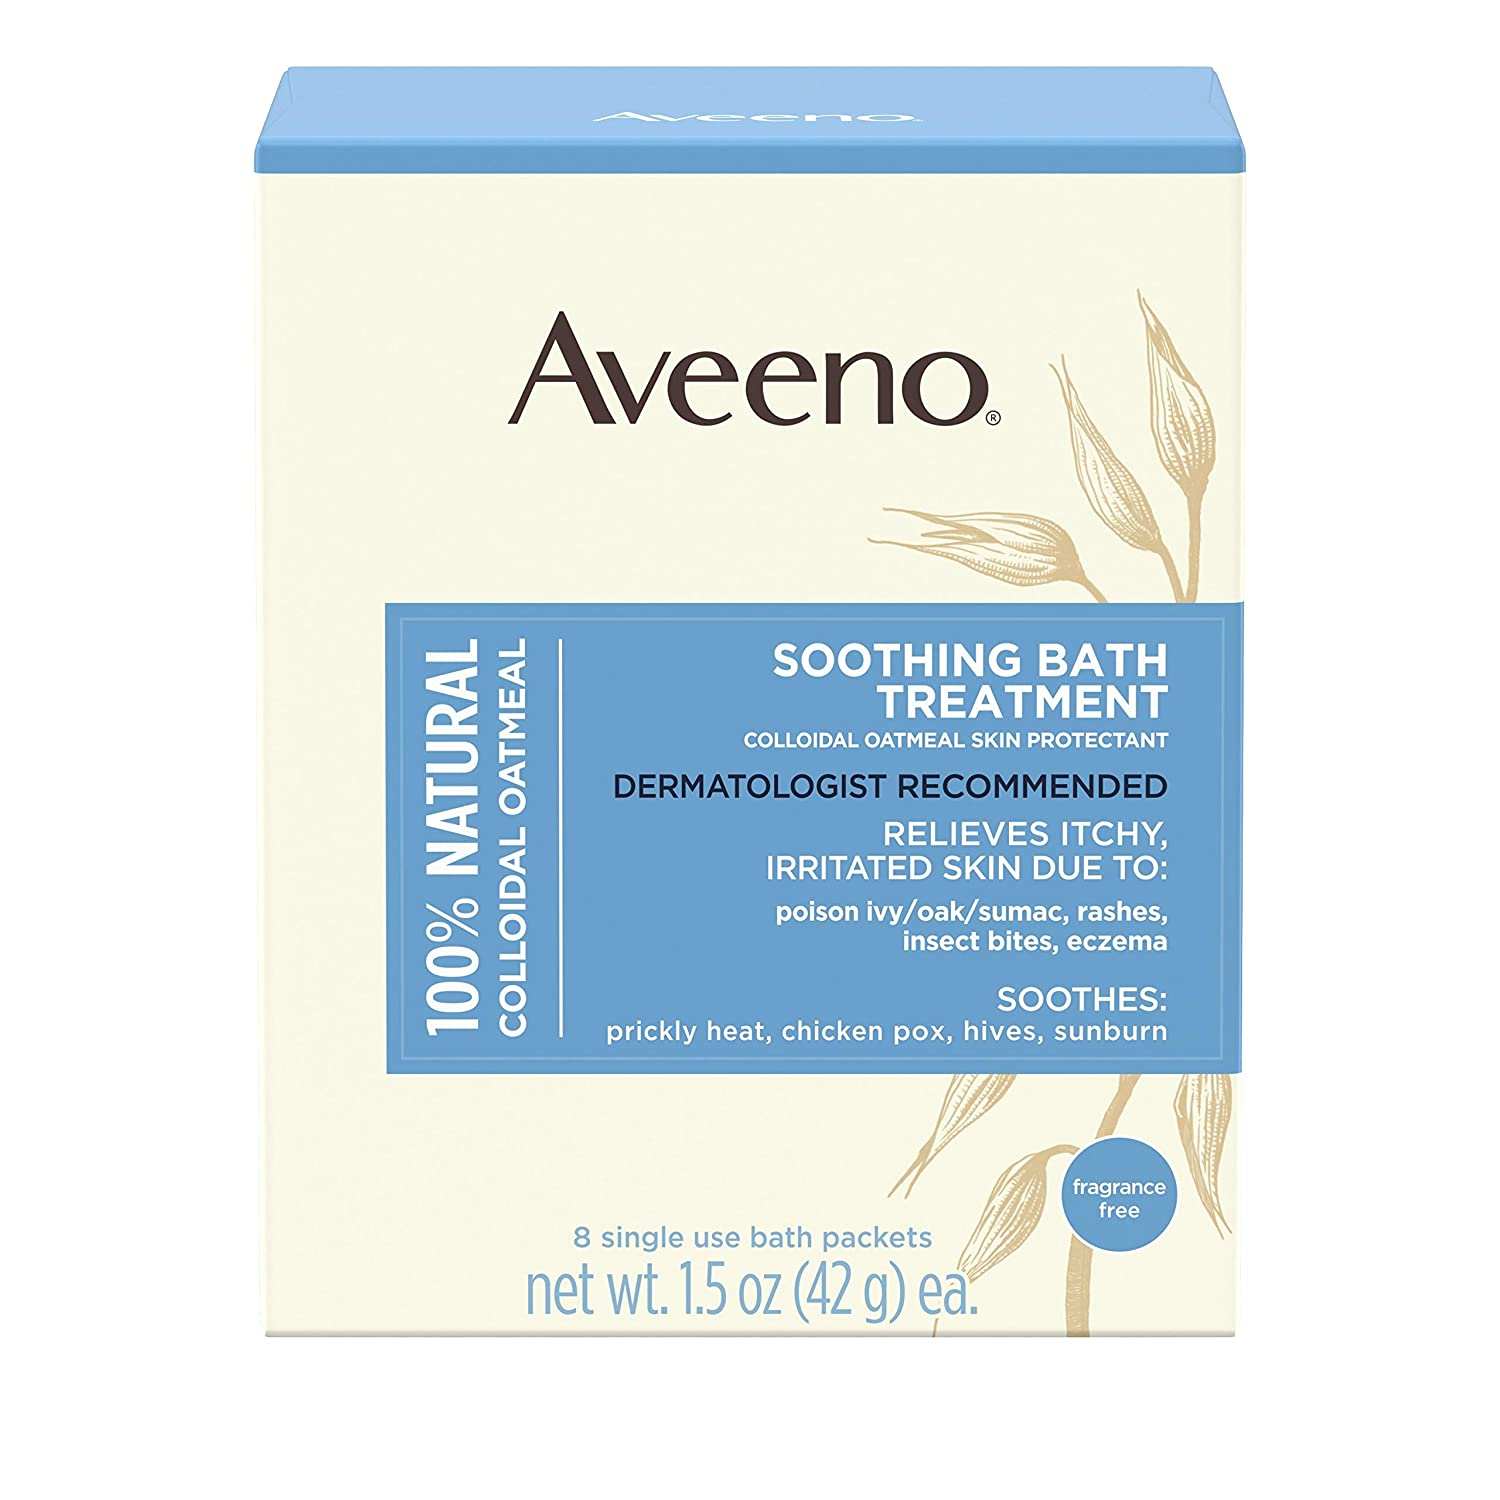 Aveeno Soothing Bath Treatment with 100% Natural Colloidal Oatmeal for Treatment & Relief of Dry, Itchy, Irritated Skin Due to Poison Ivy, Eczema, Sunburn, Rash, Insect Bites & Hives, 8 ct. : Bubble Baths : Beauty